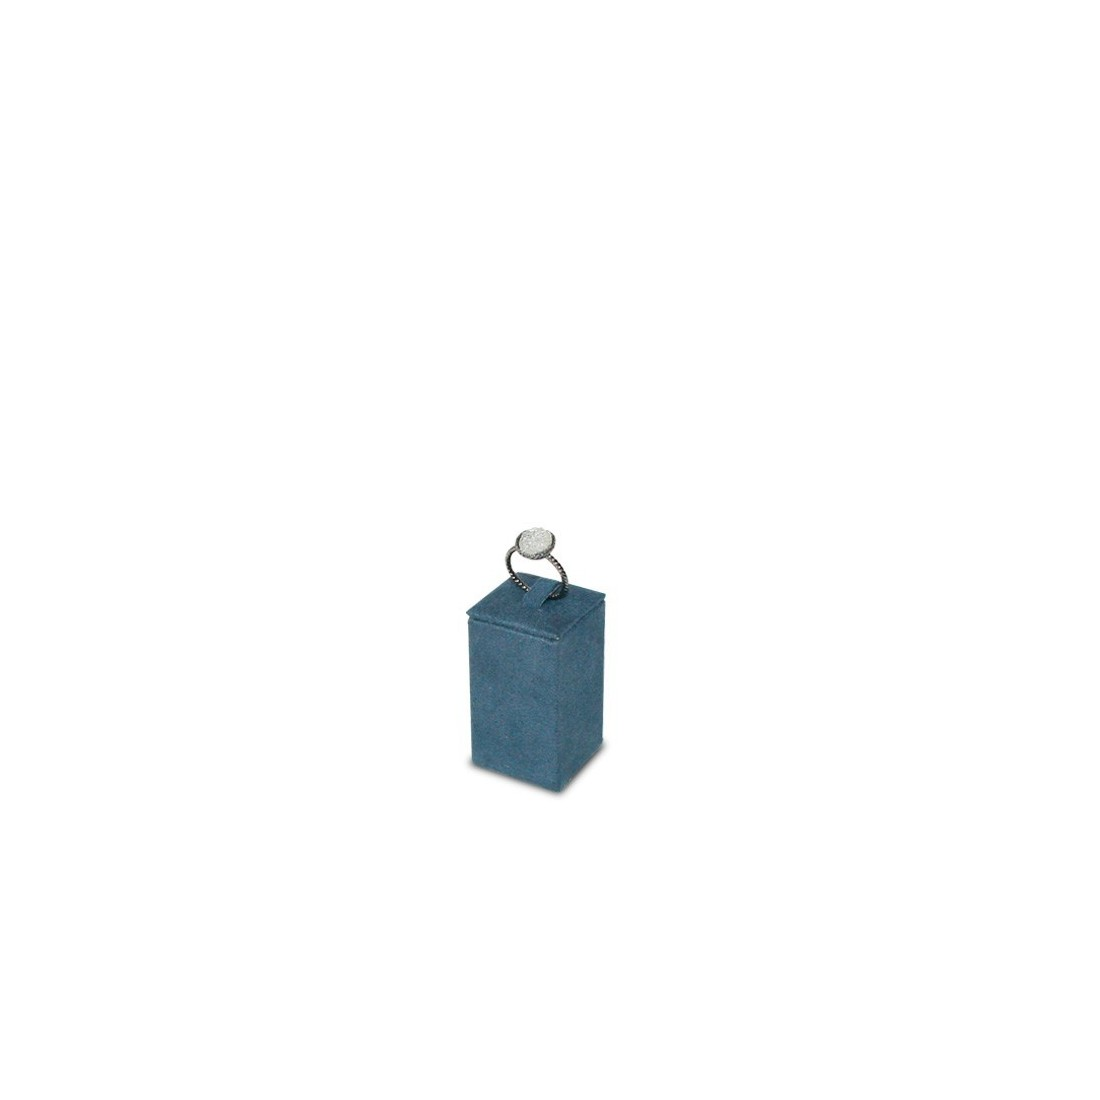 Display Stand for Rings, M